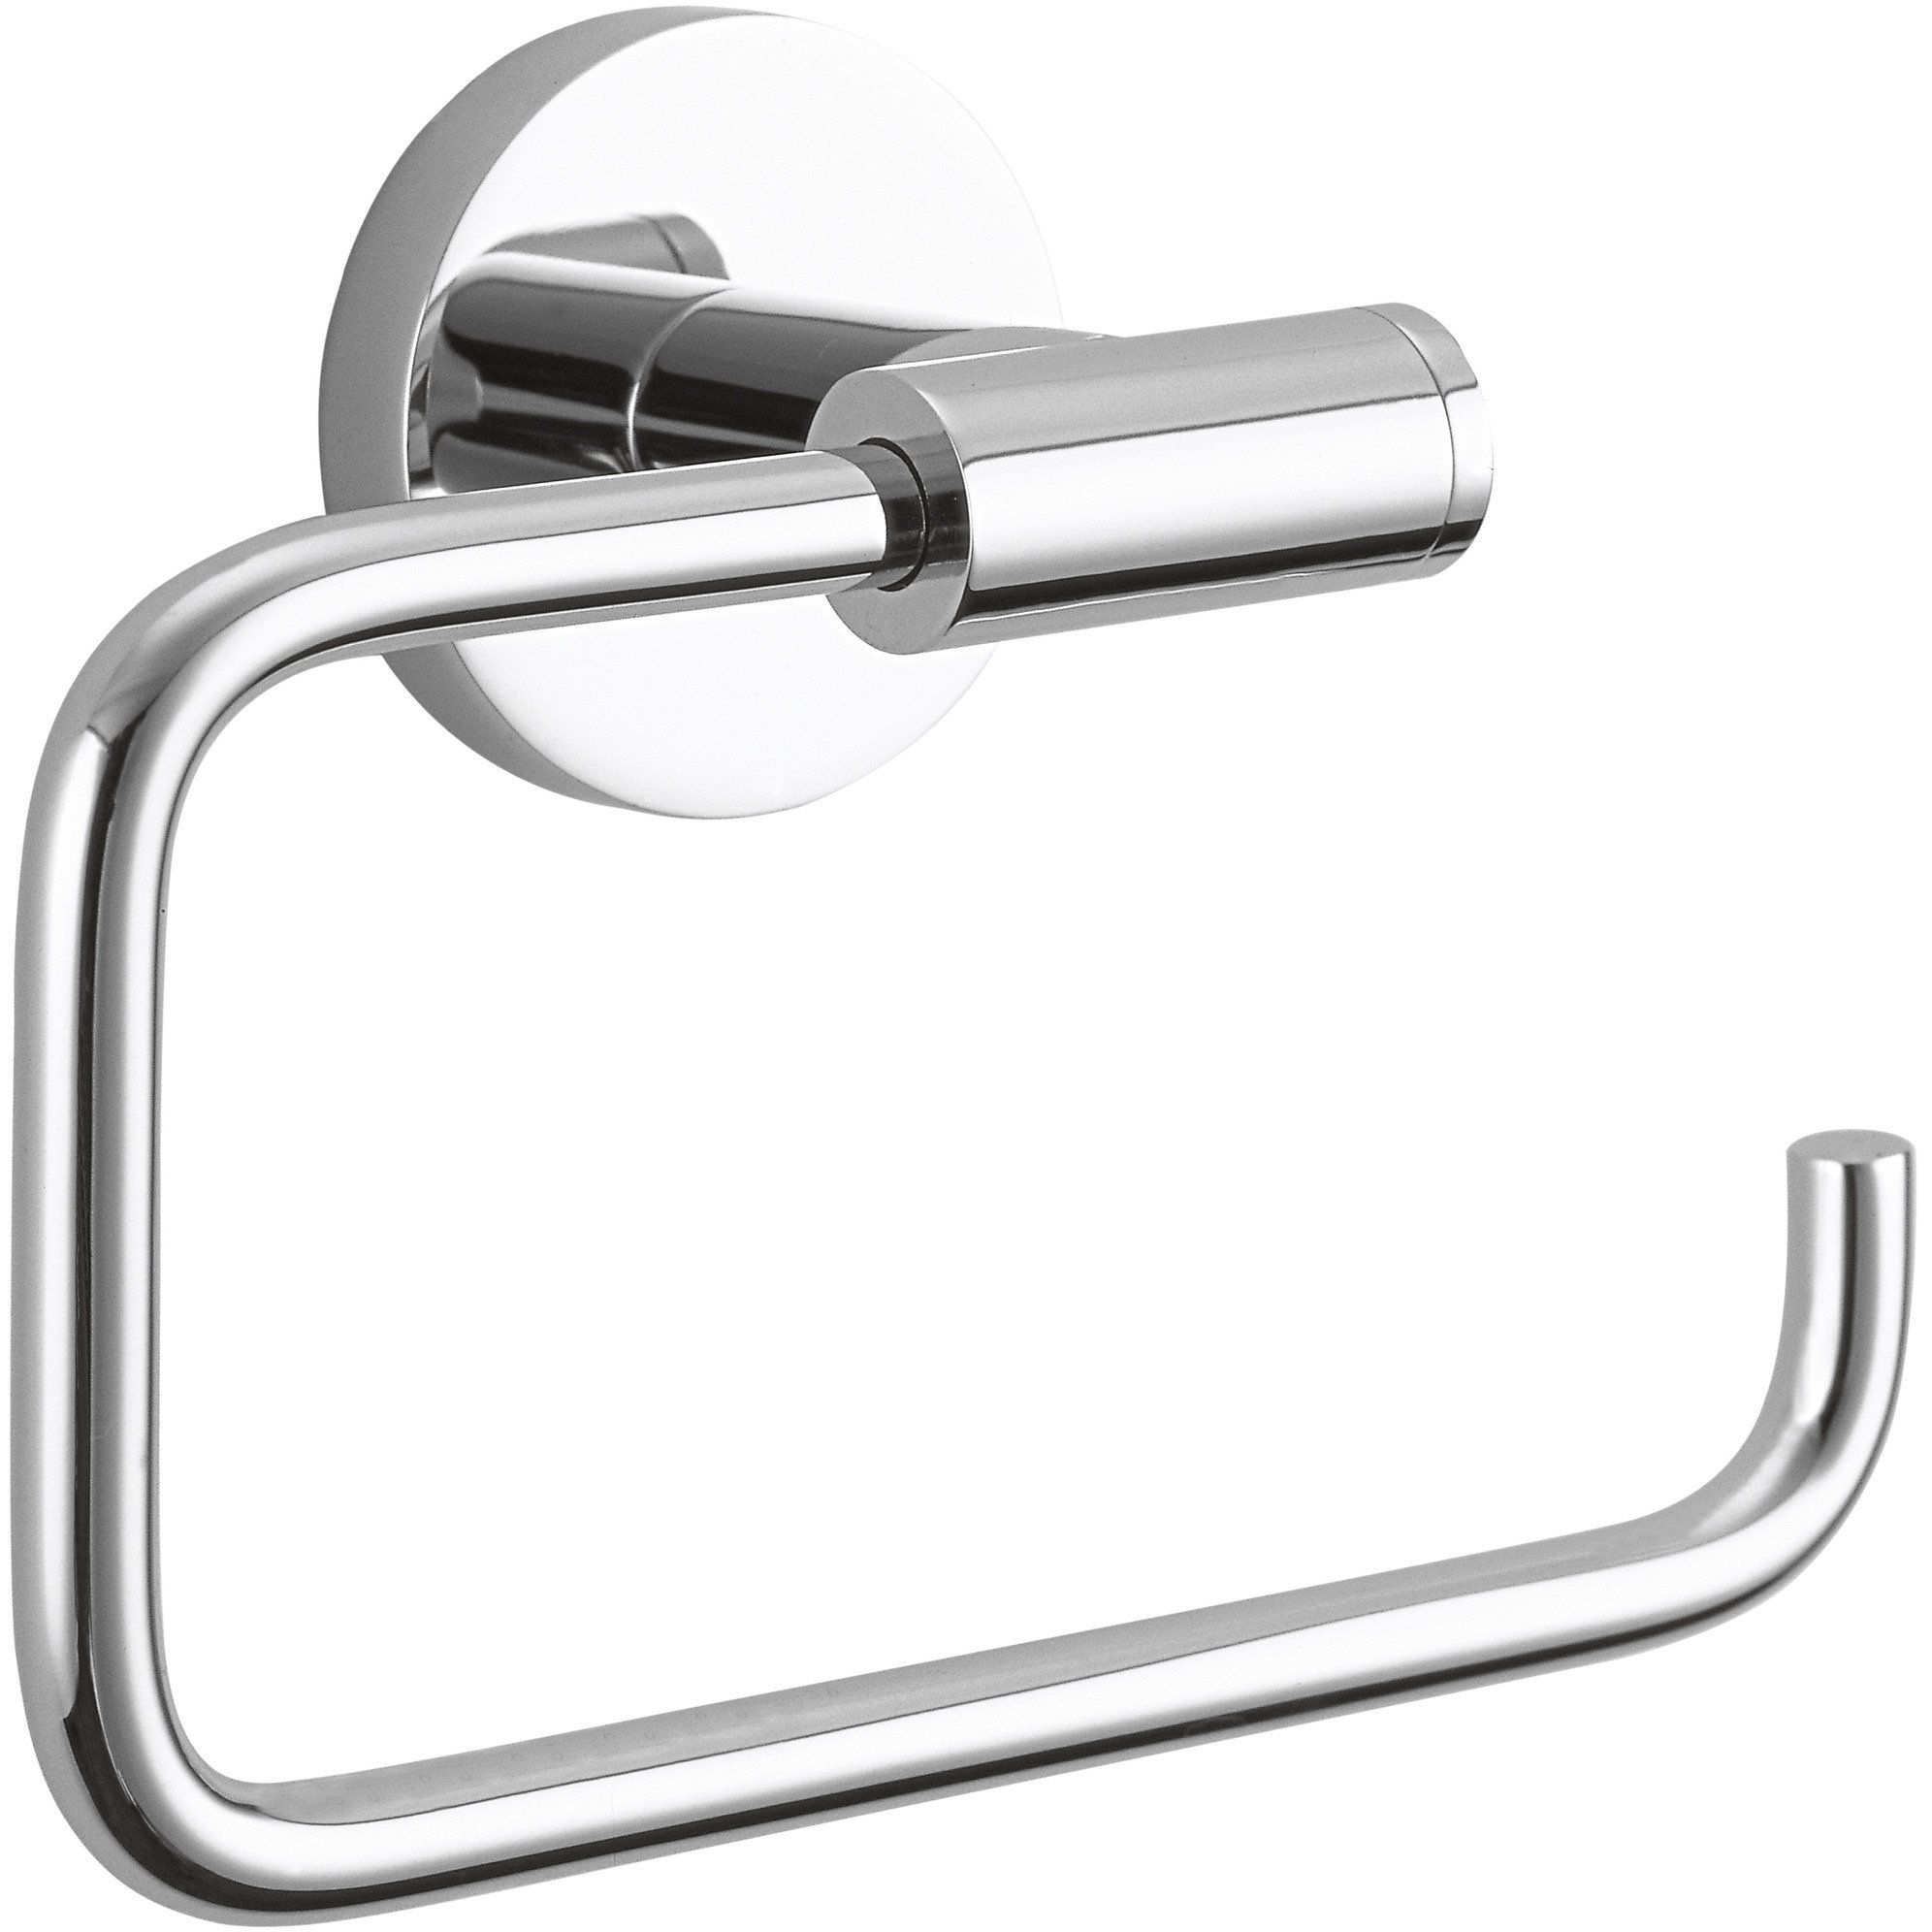 Ba Tph3 Towel Ring Holder Brass Small Towel Hanger Polished Chrome Wall Mounted Toilet Recessed Toilet Paper Holder Pedestal Toilet Paper Holder